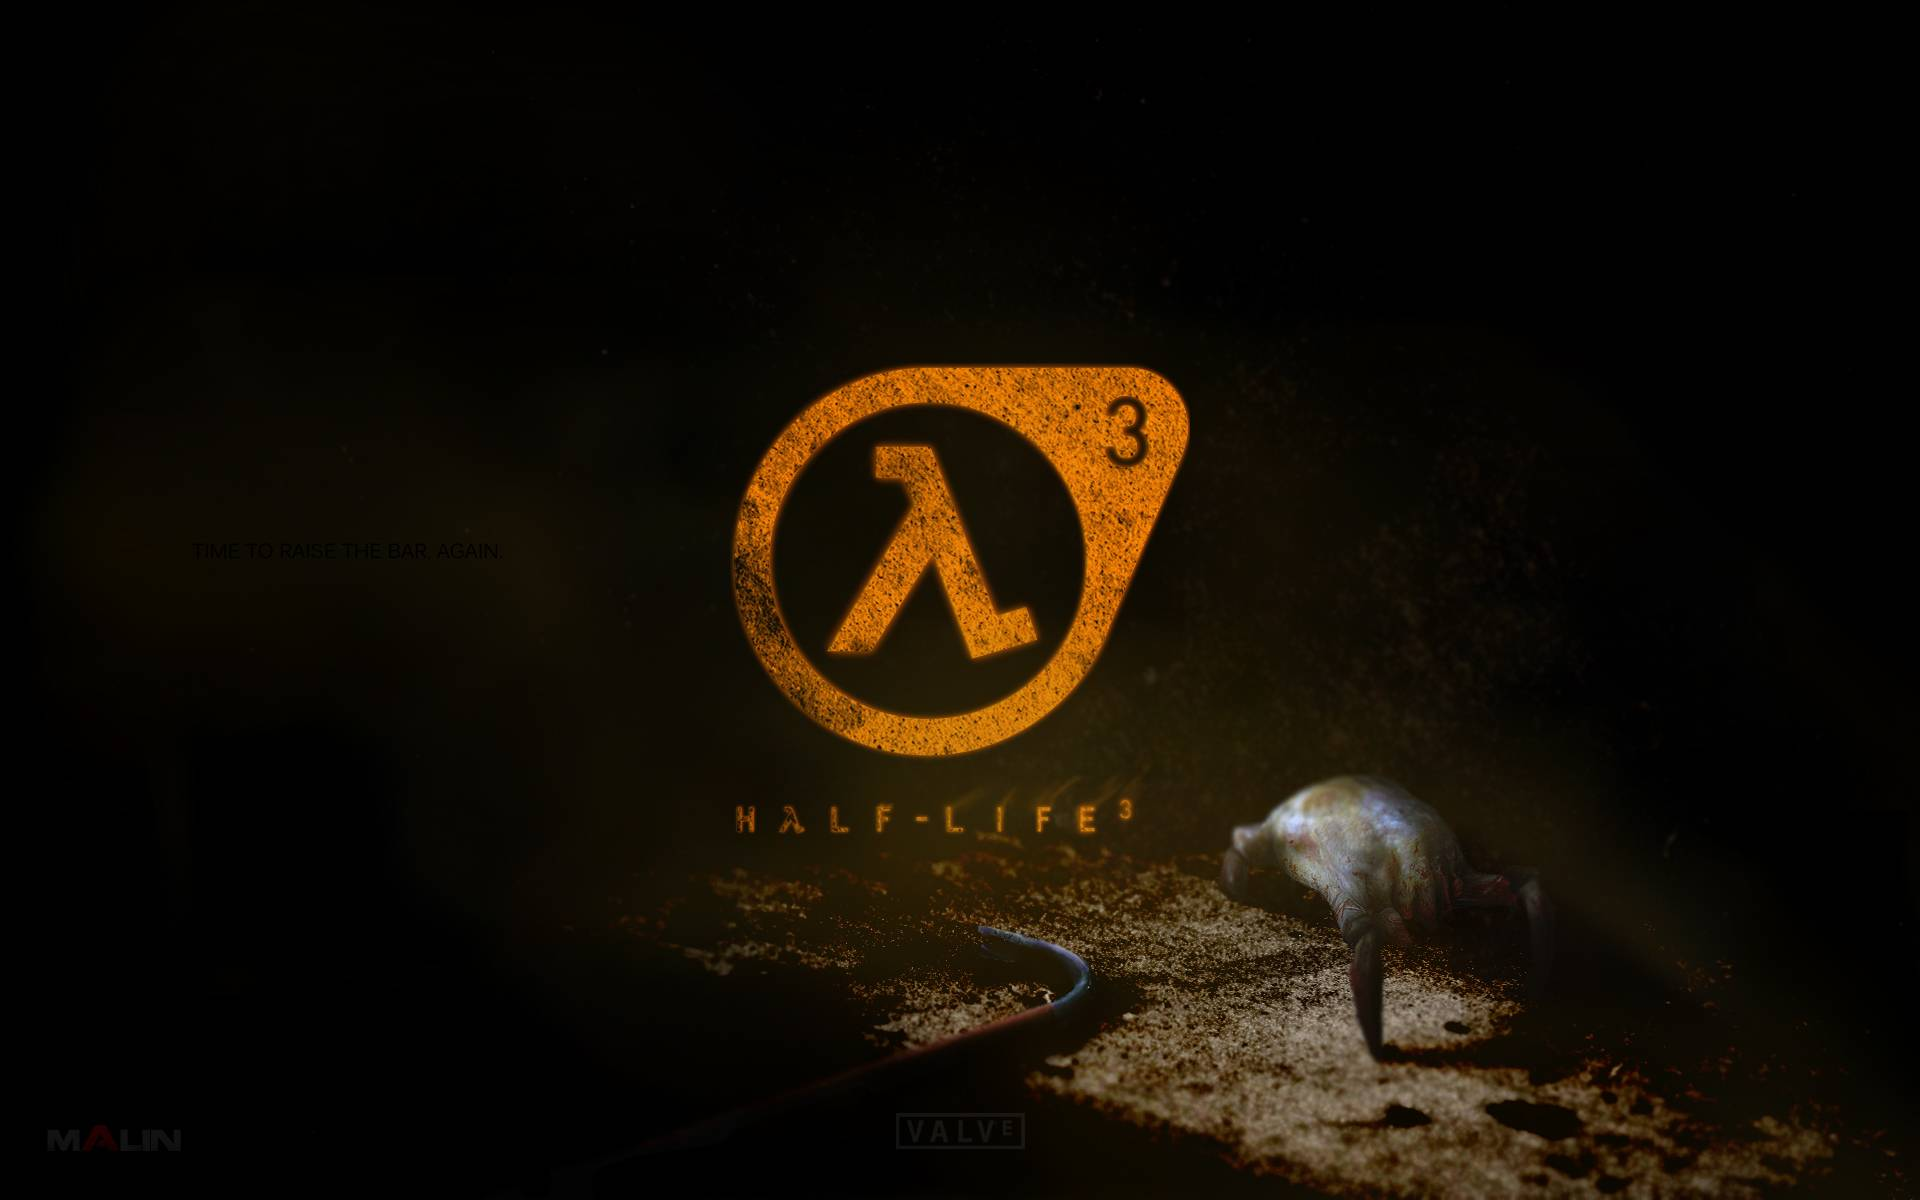 What did Valve showcase at GDC 2013